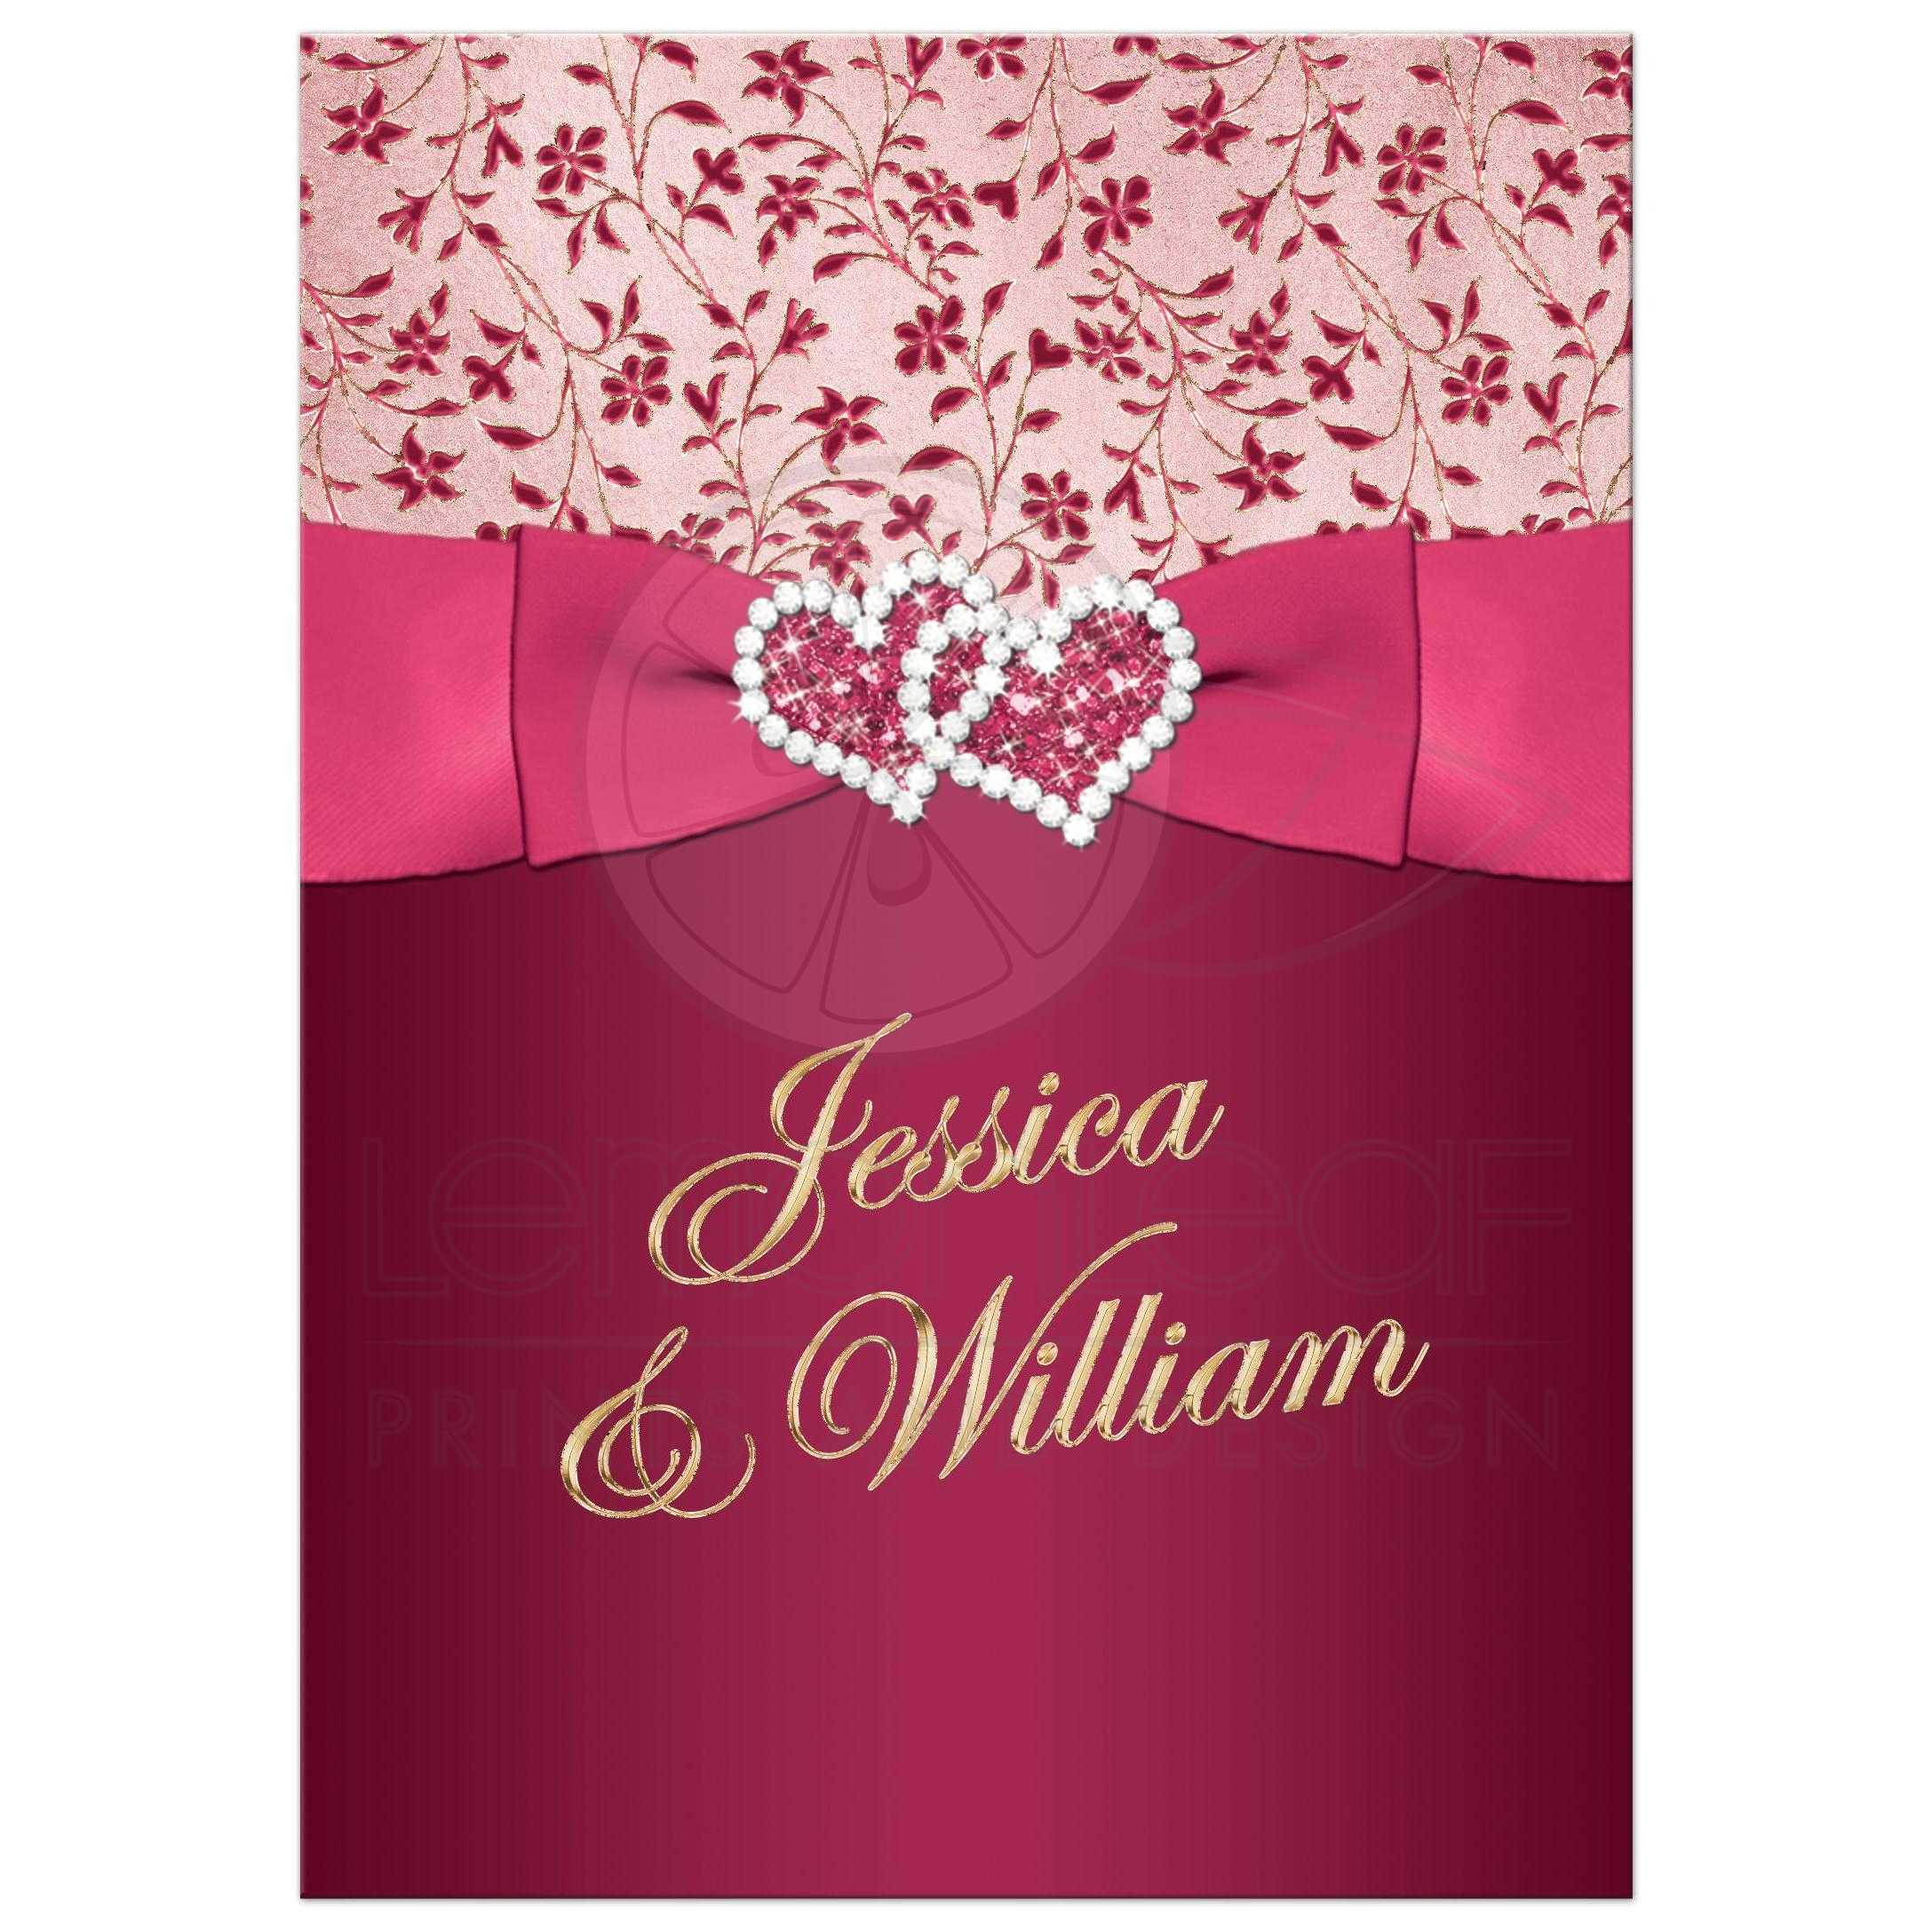 Great Burgundy Rose Pink And Gold Floral Wedding Invitations With Joined Jewel: Pink And Burgundy Wedding Invitations At Websimilar.org